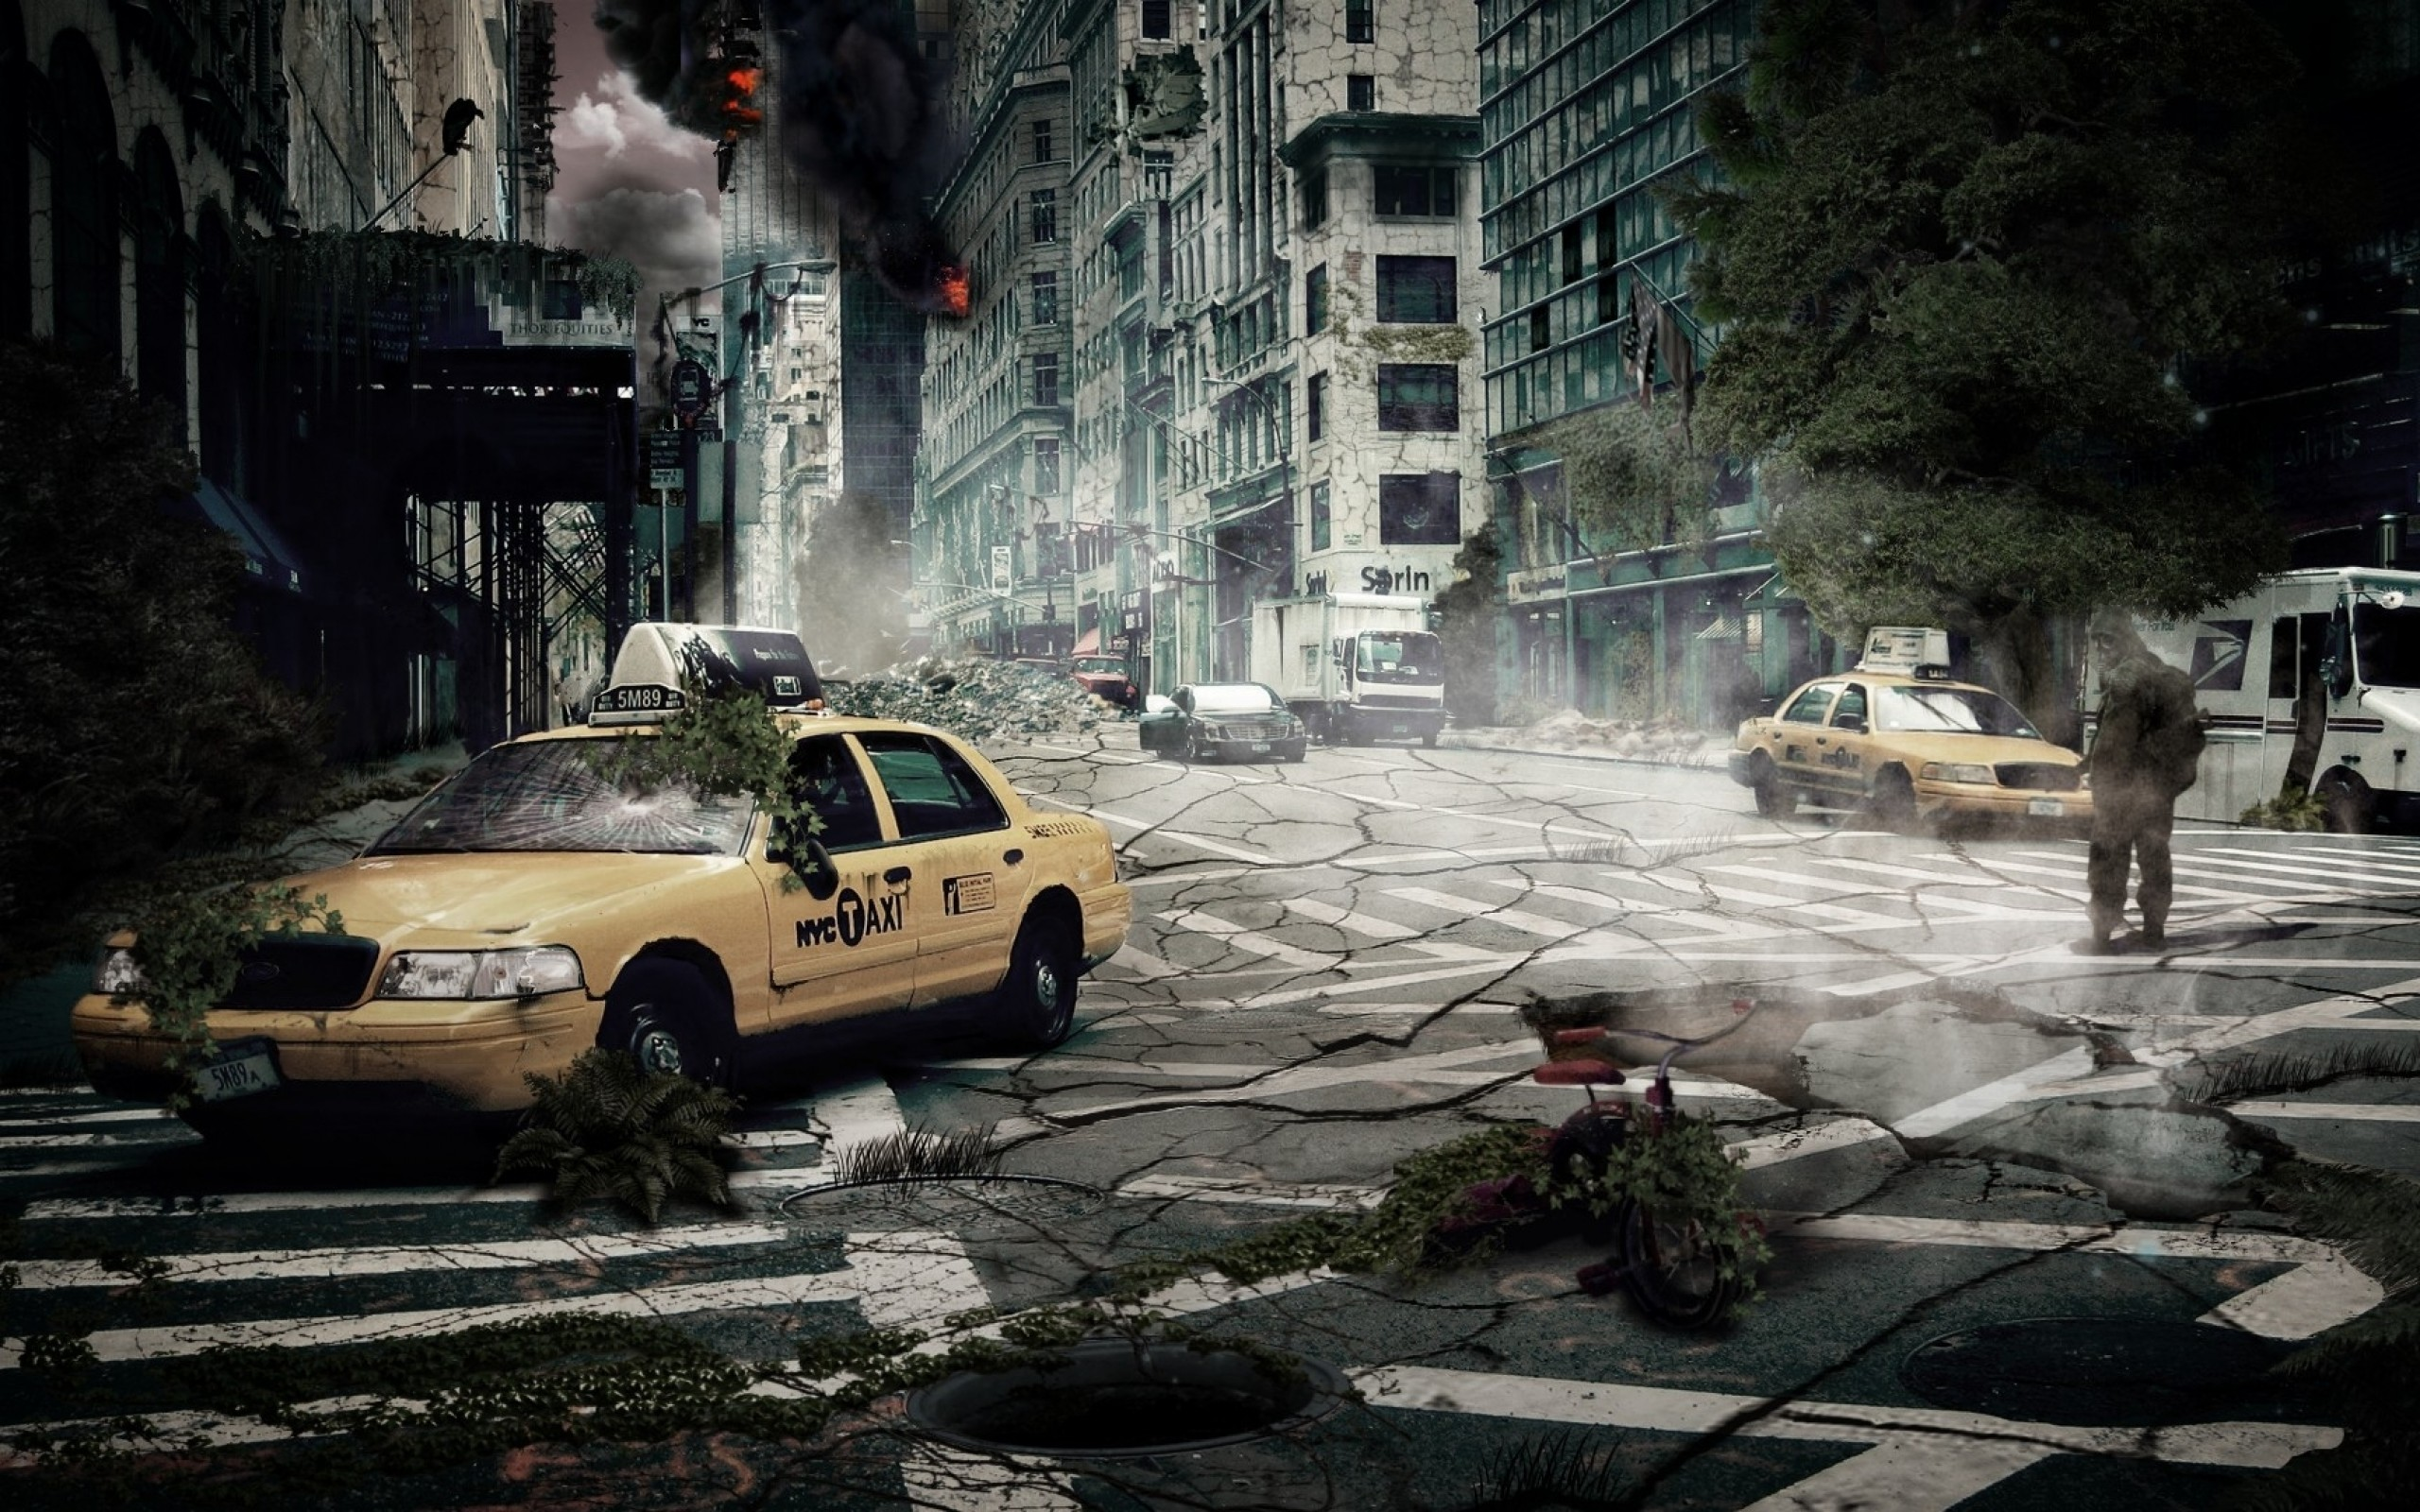 End of the world wallpaper 2560x1600 download wallpaper back cityscapes end of the world voltagebd Image collections